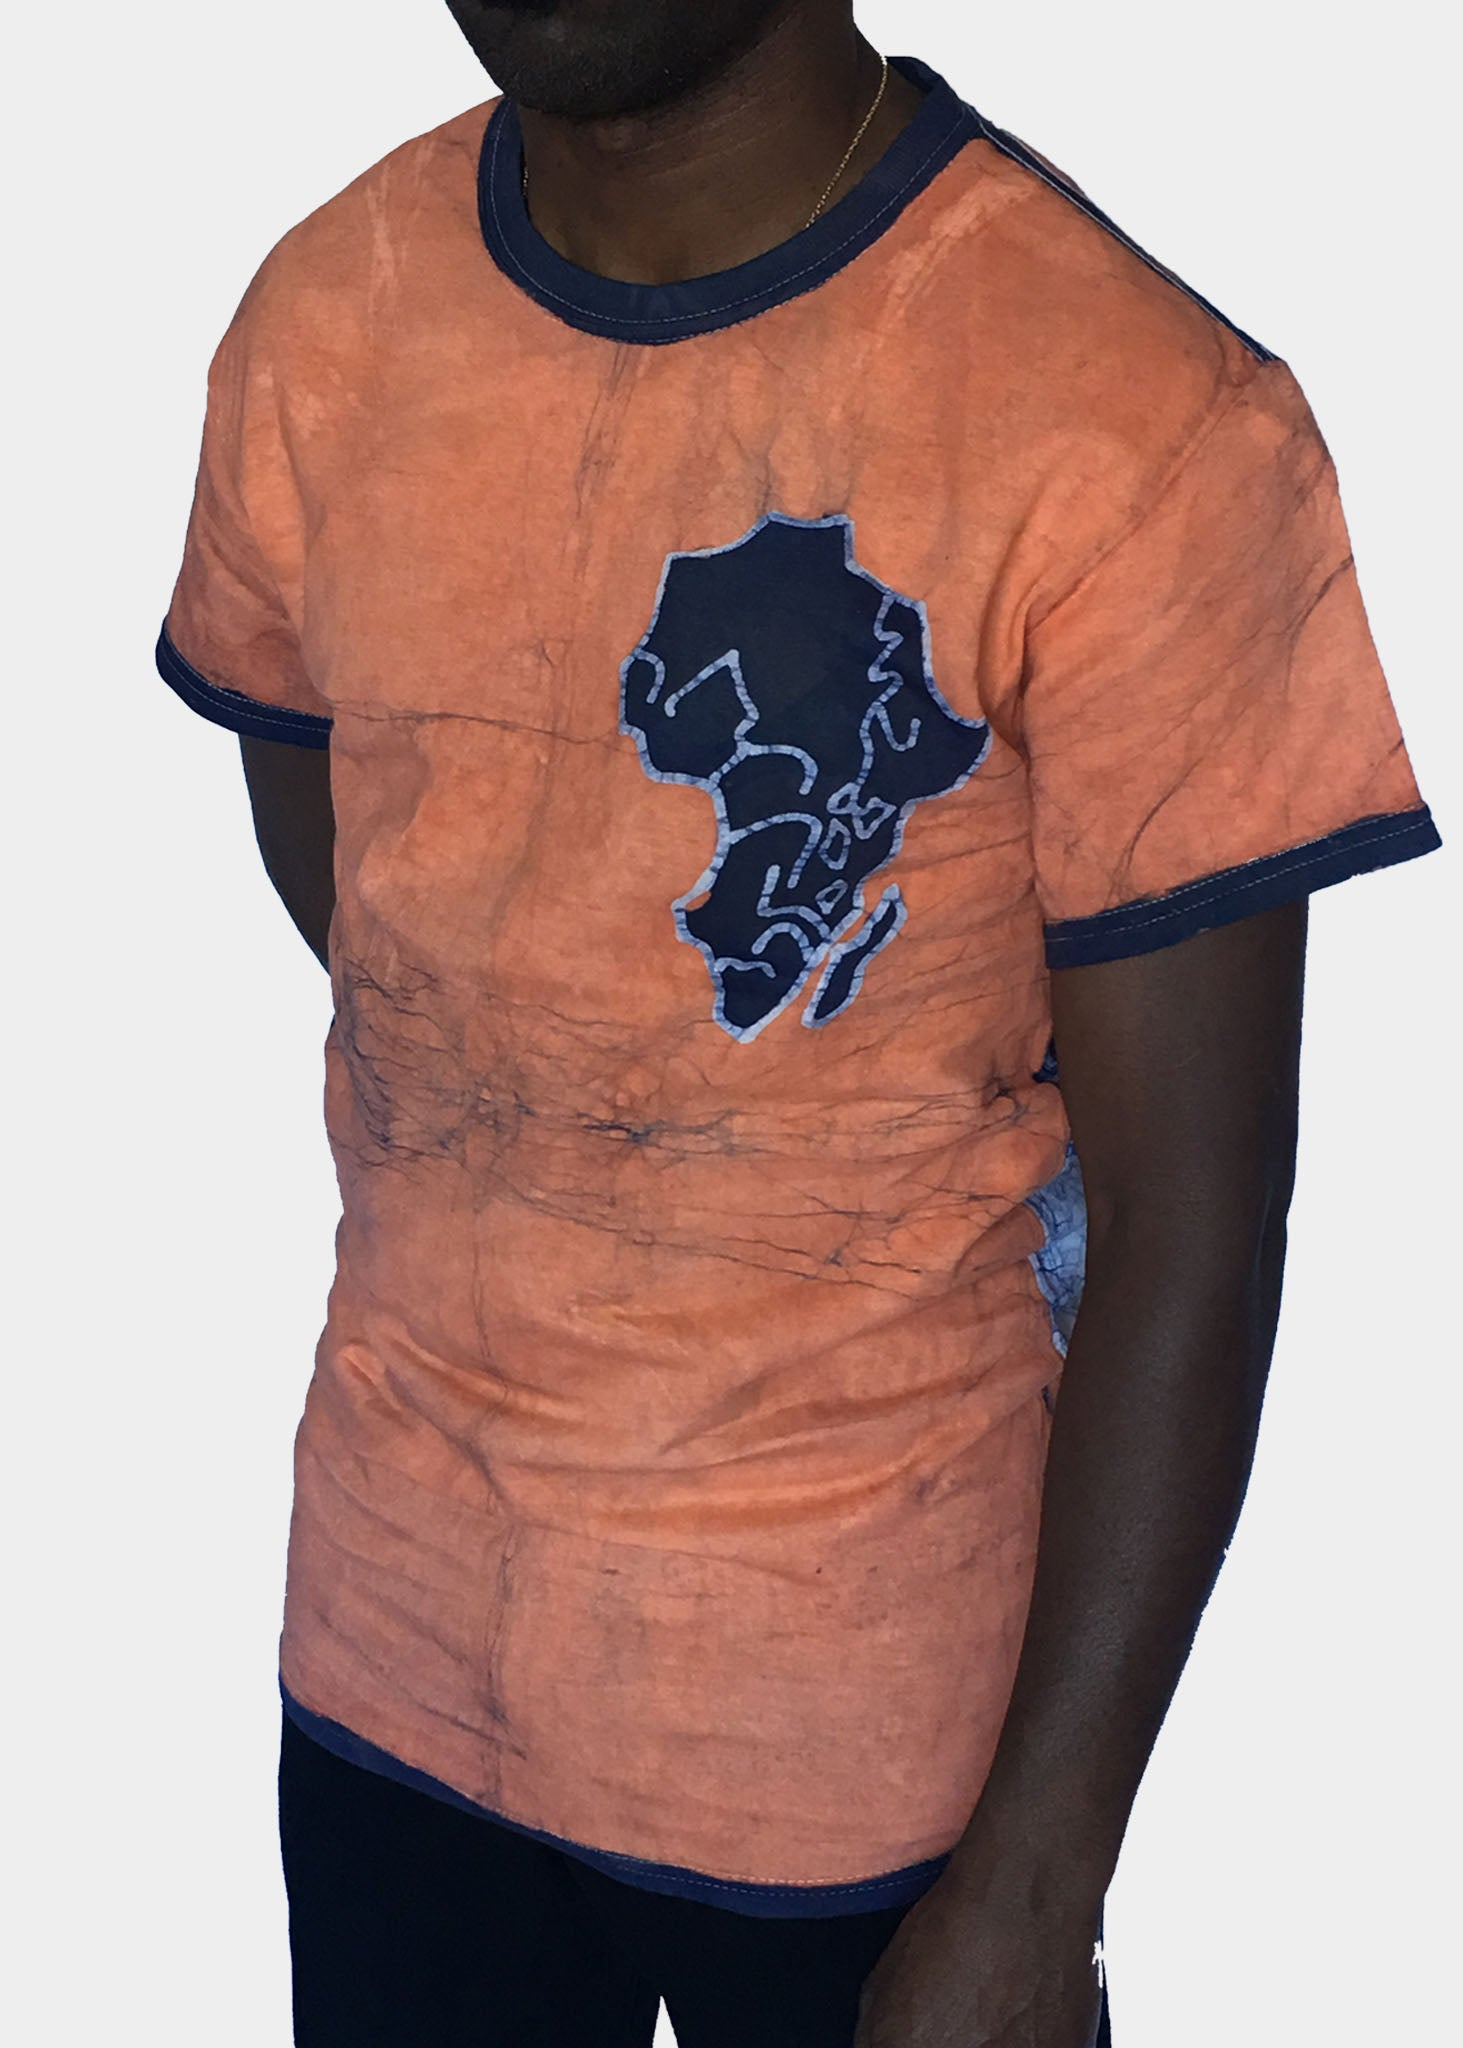 Sand Short Sleeve T-shirt with Africa Map